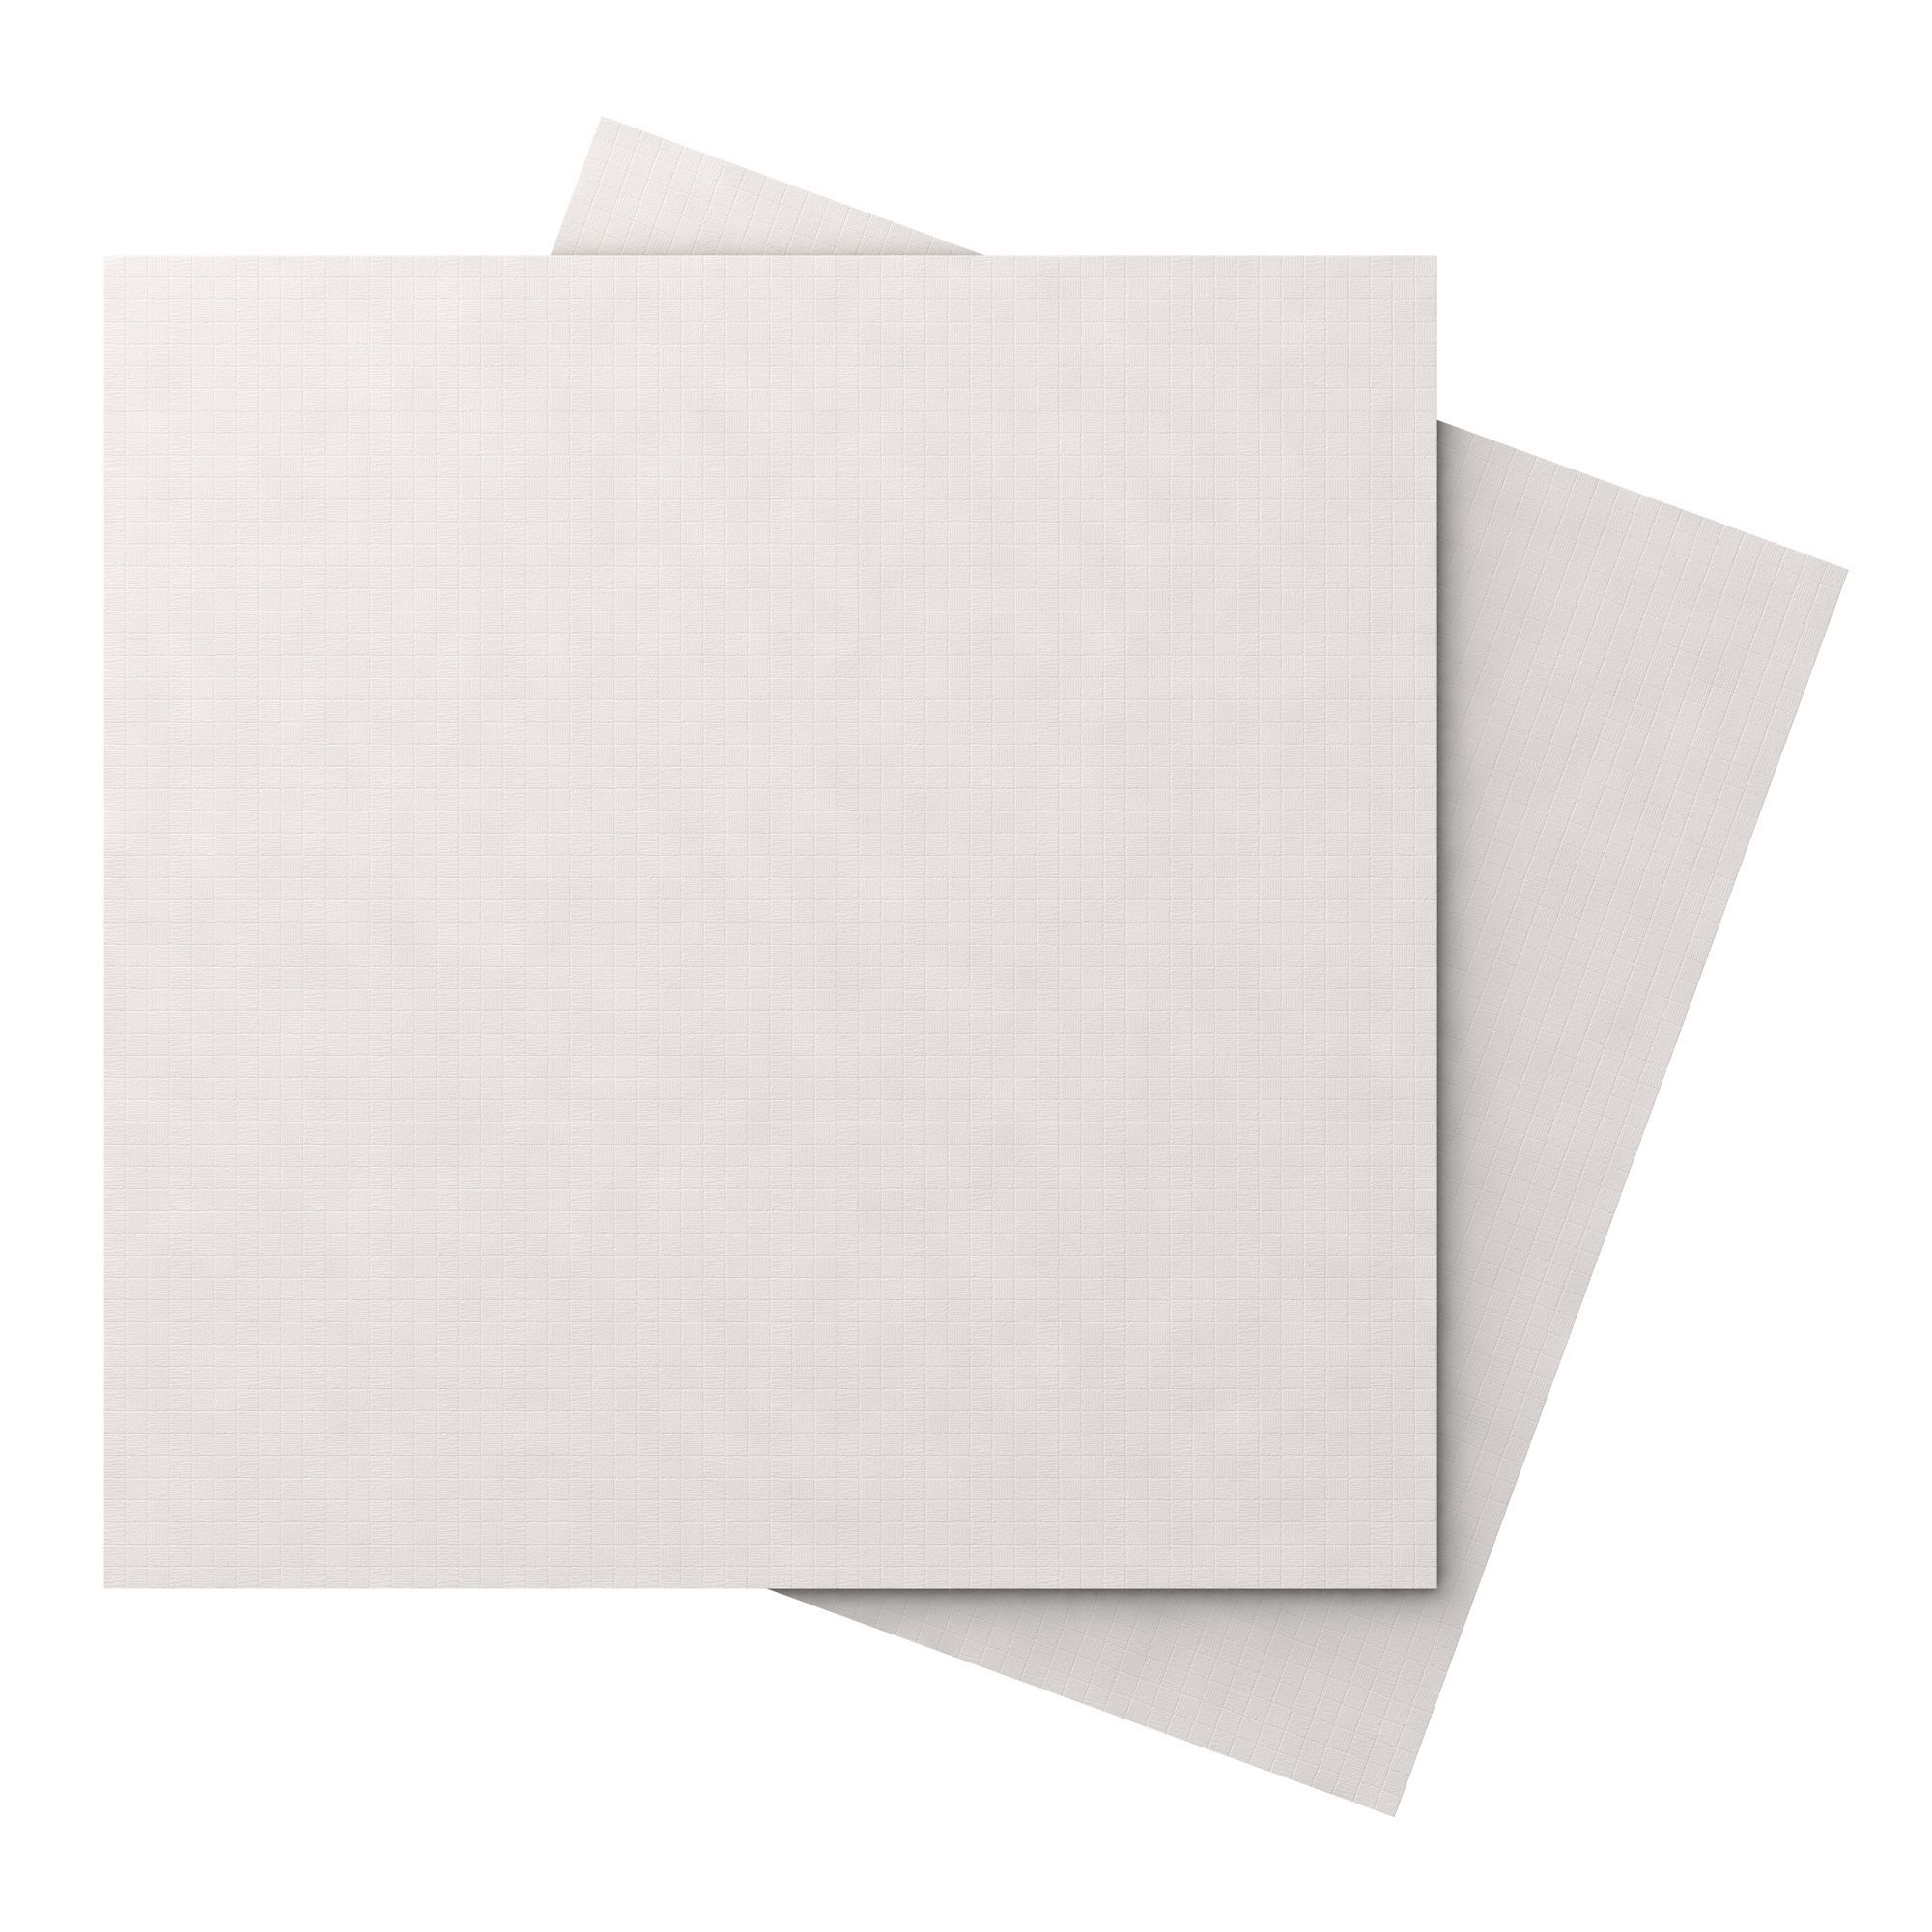 Soho white porcelain floor tile pack of 3 l600mm w600mm soho white porcelain floor tile pack of 3 l600mm w600mm departments diy at bq dailygadgetfo Gallery